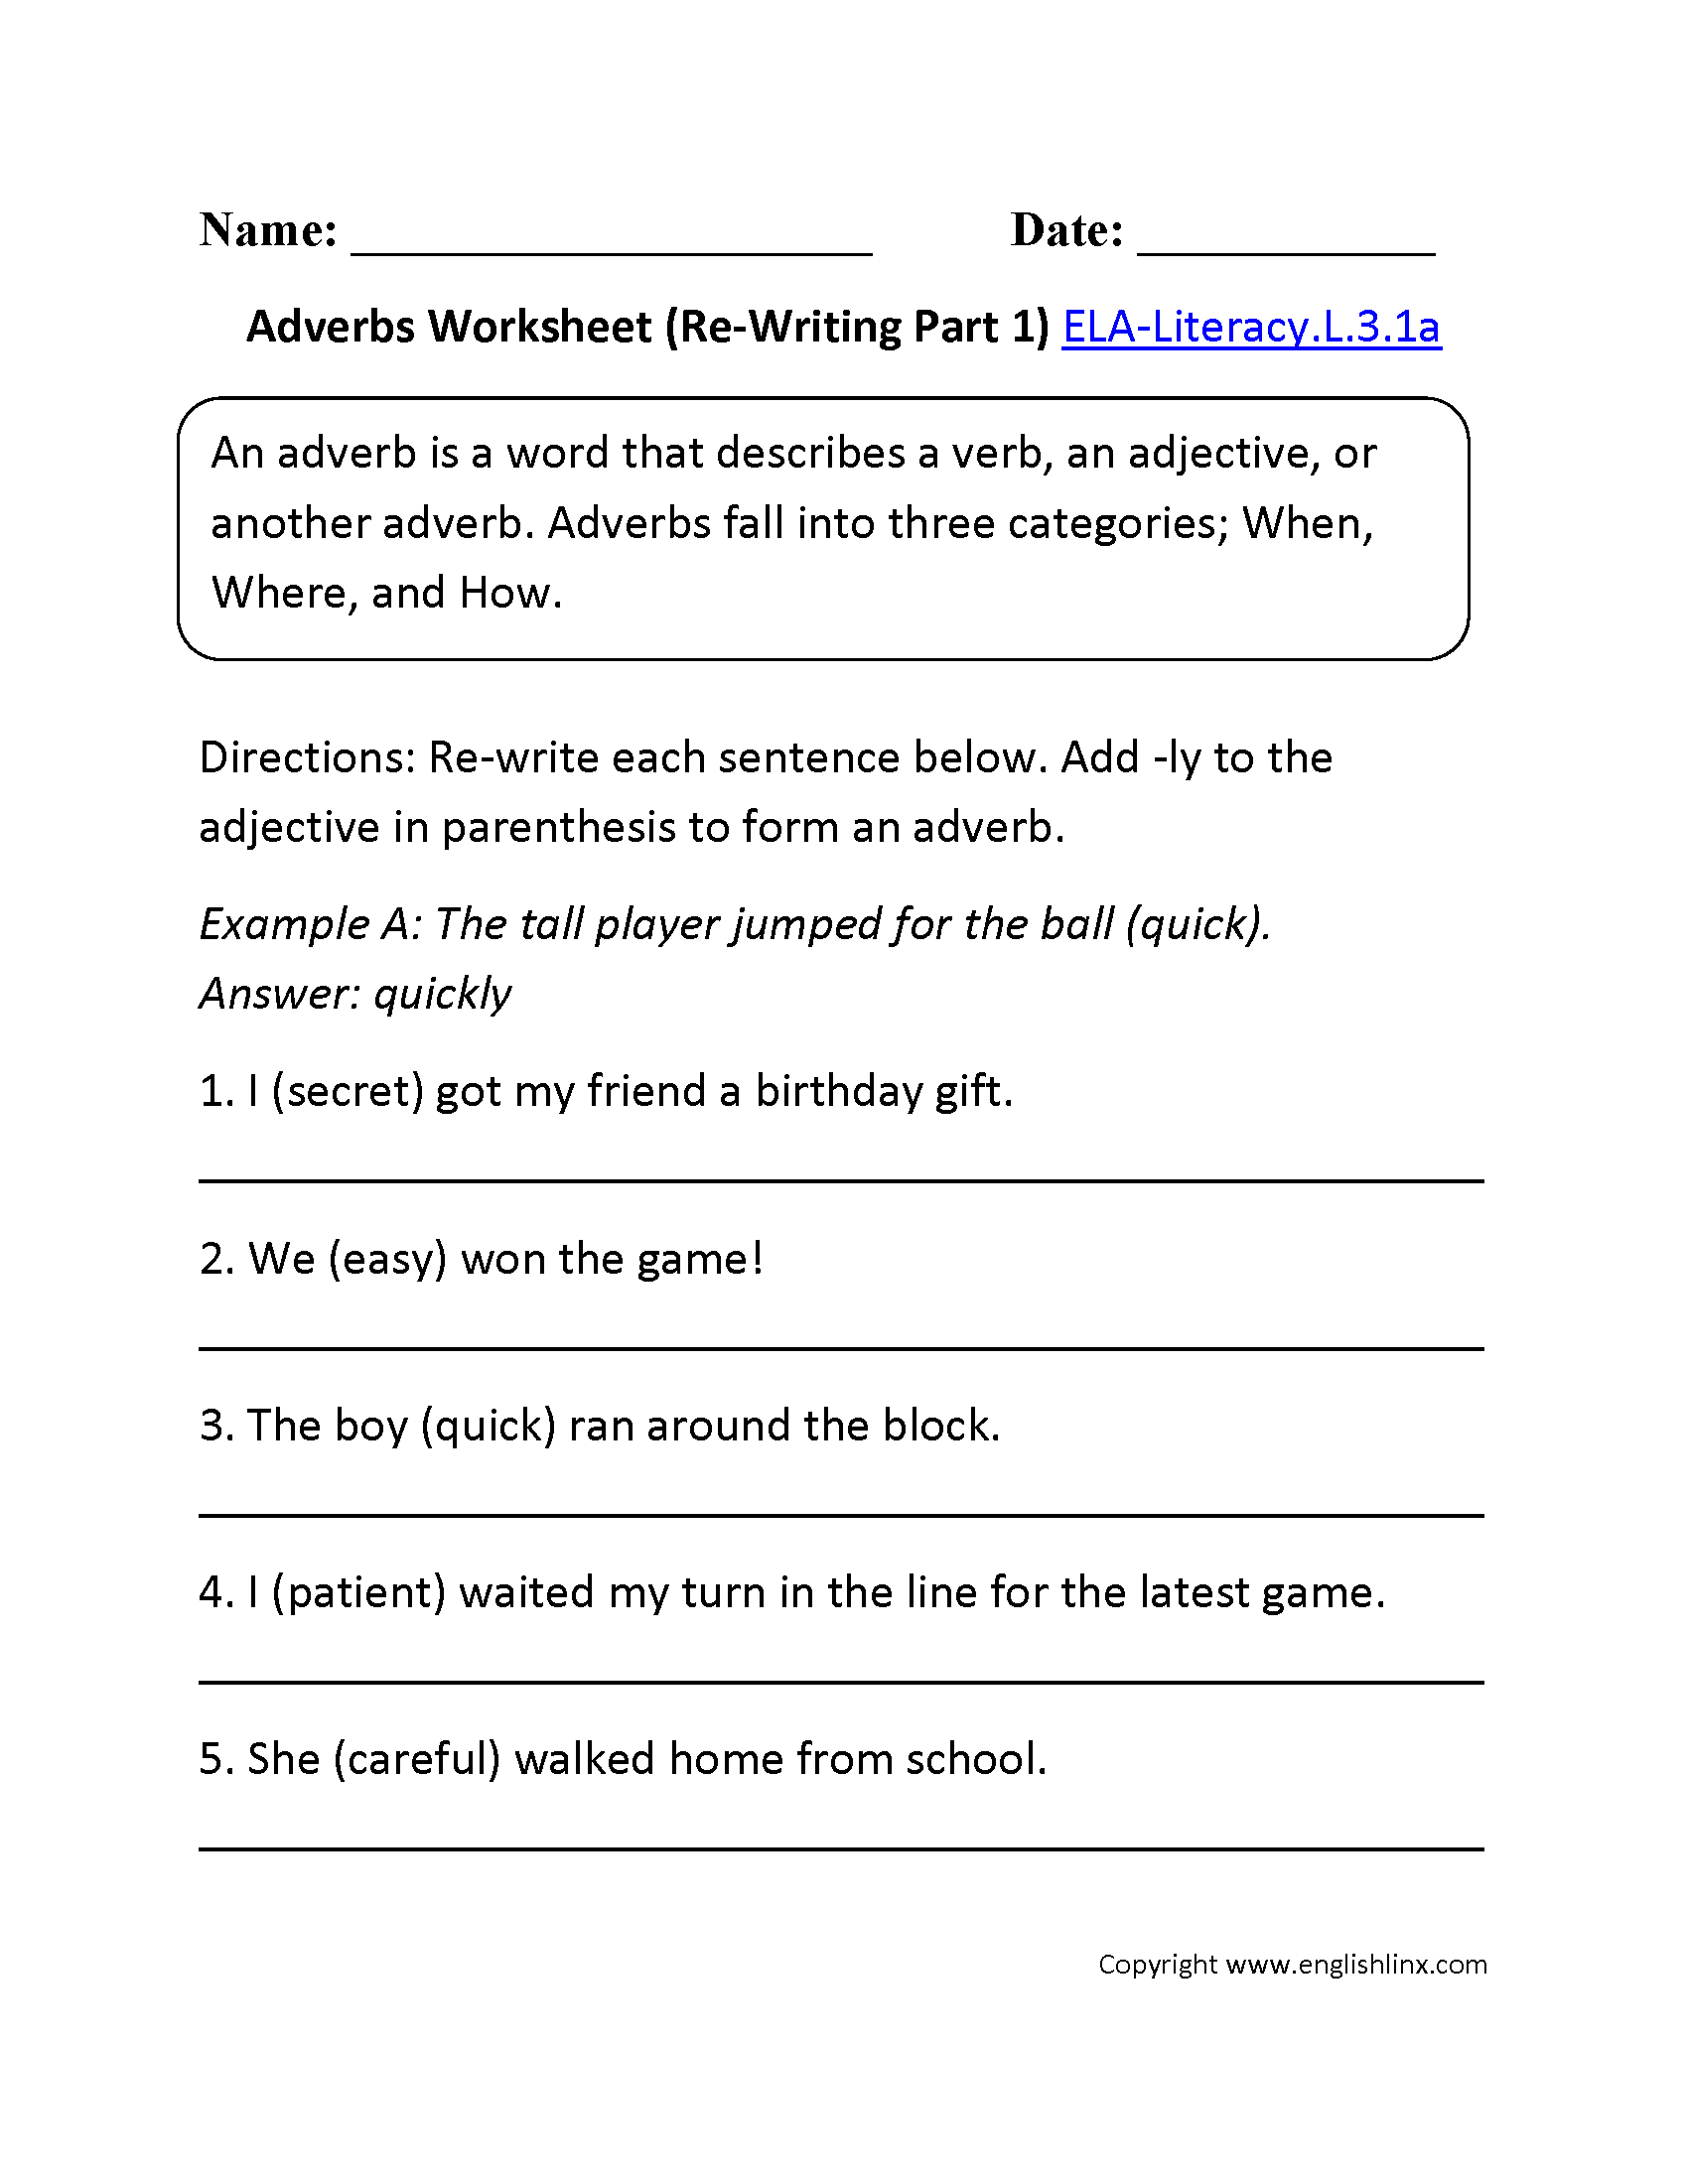 worksheet Common Core Writing Worksheets adverbs worksheet 2 l 3 1 pinterest english worksheets that are aligned to the grade common core standards for language